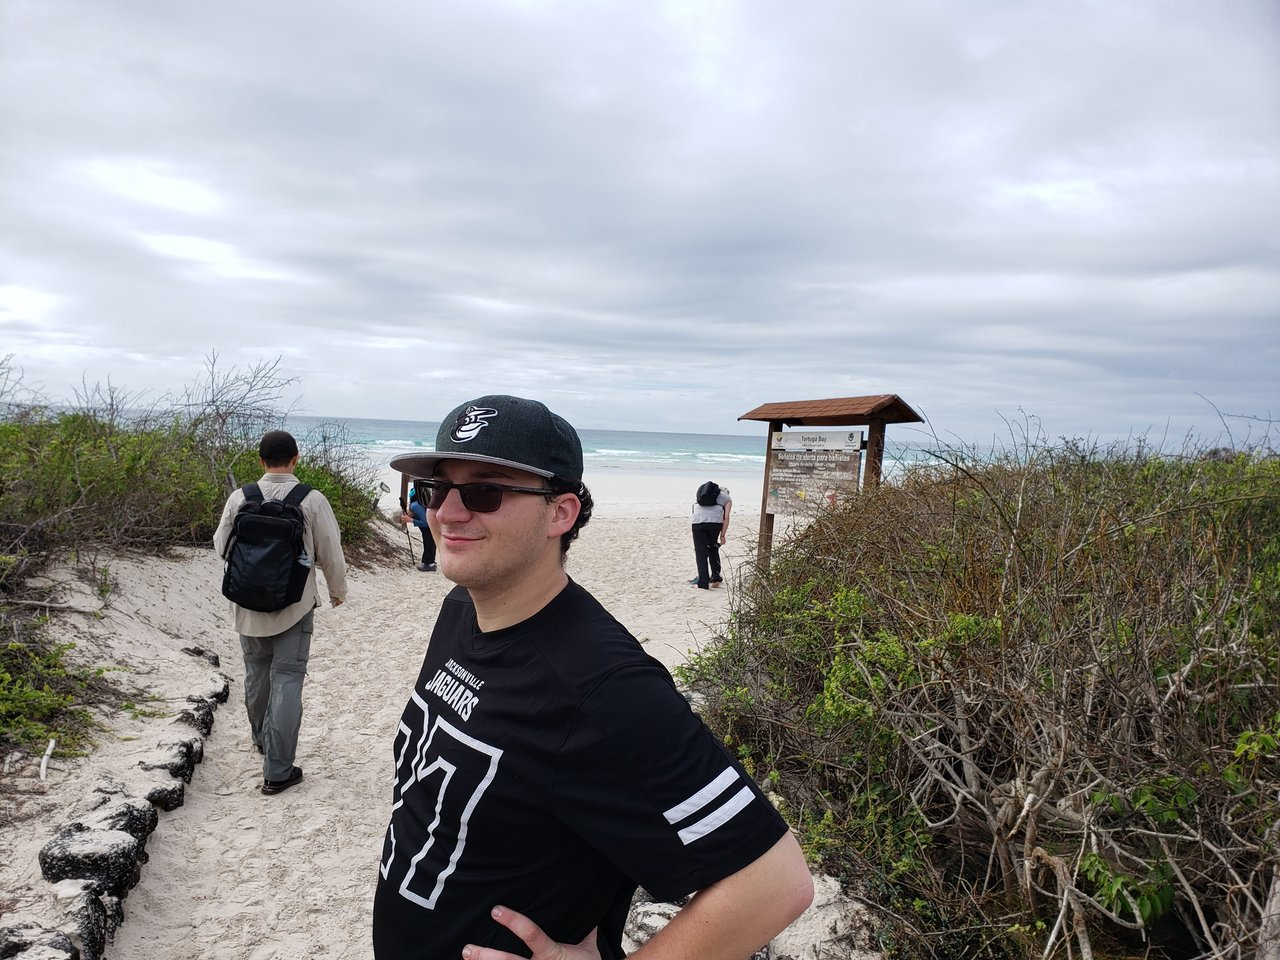 Arriving at Tortuga Bay after the a wild walk | Photo taken by Peter S